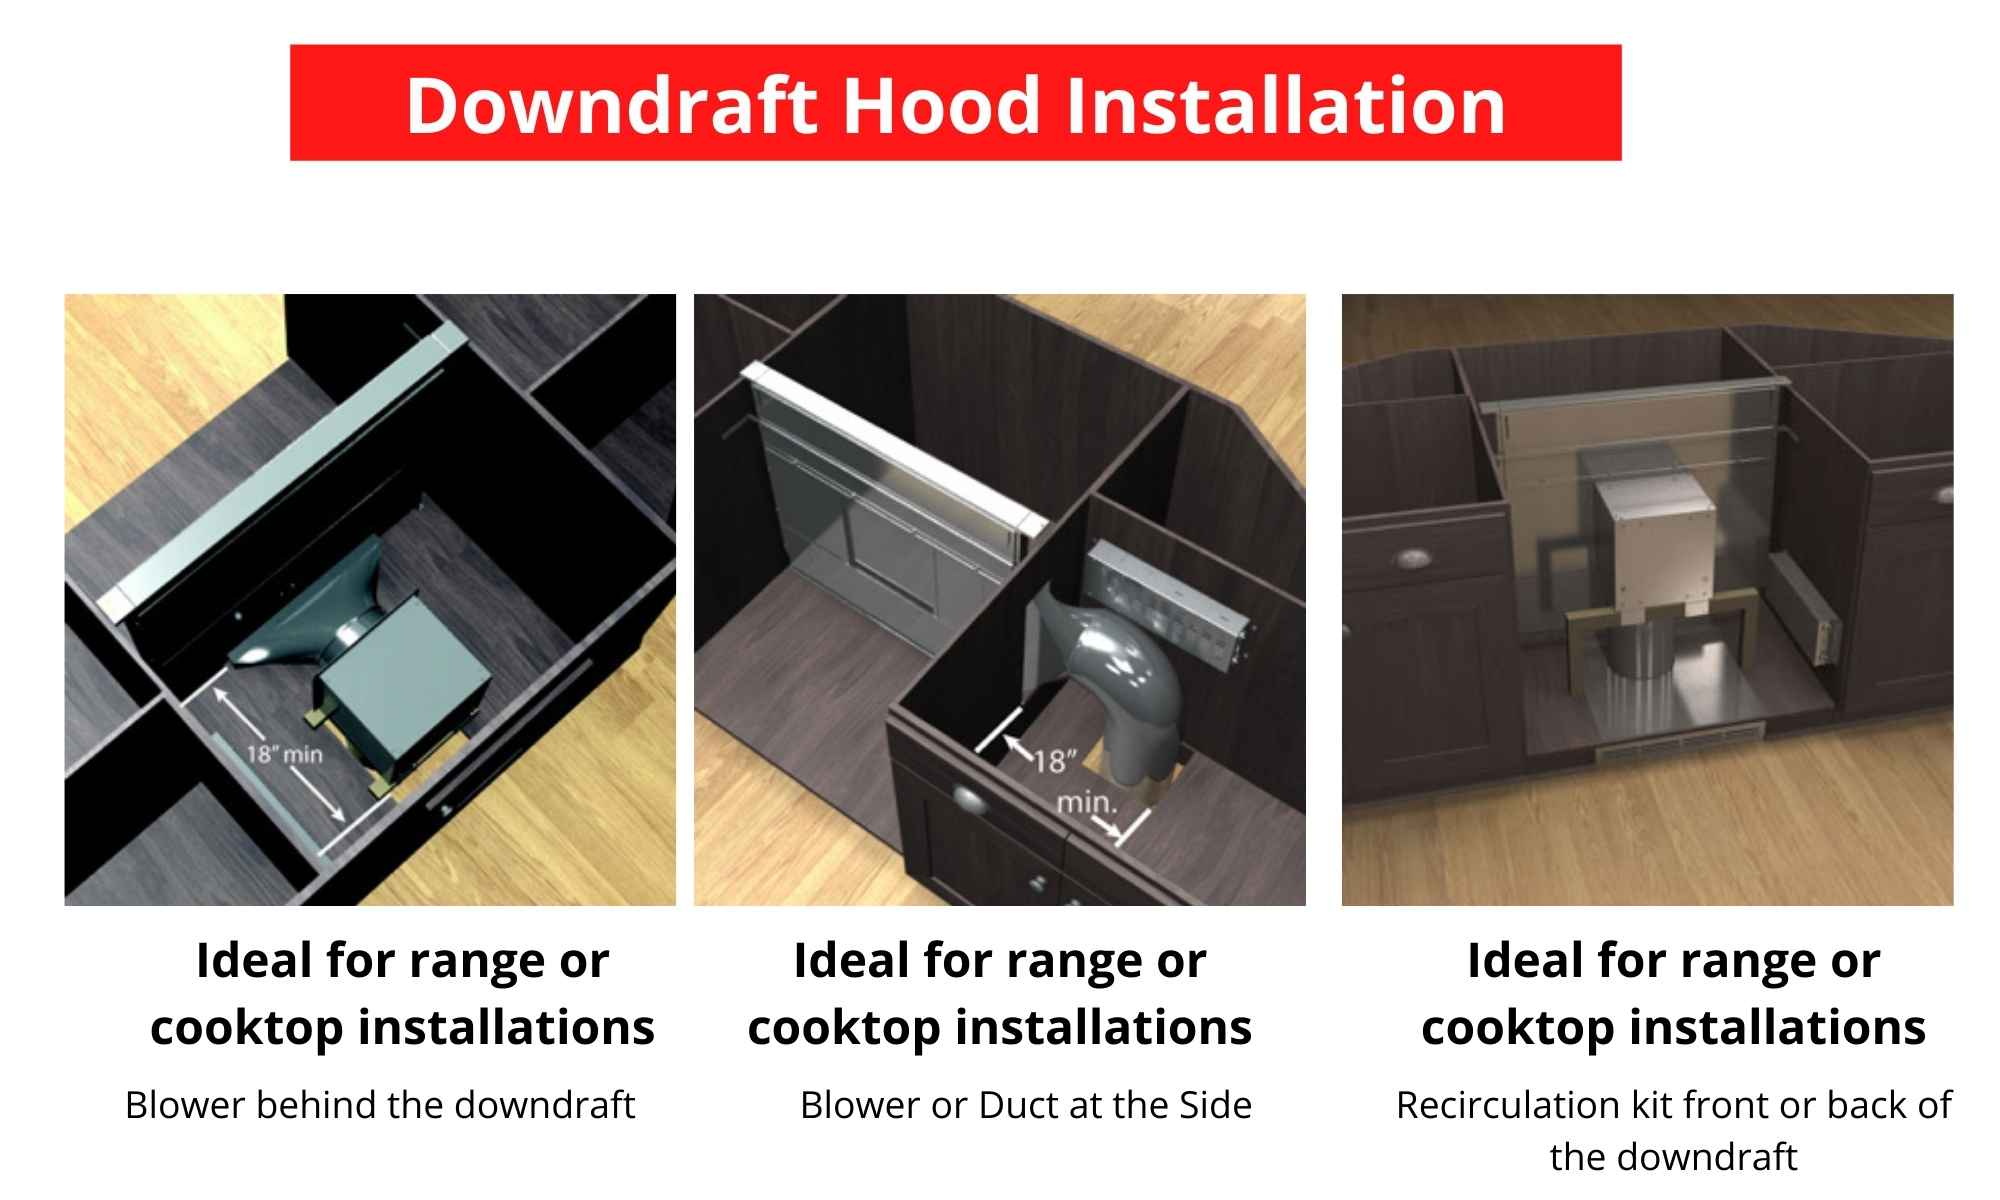 downdraft installation with a range or stove